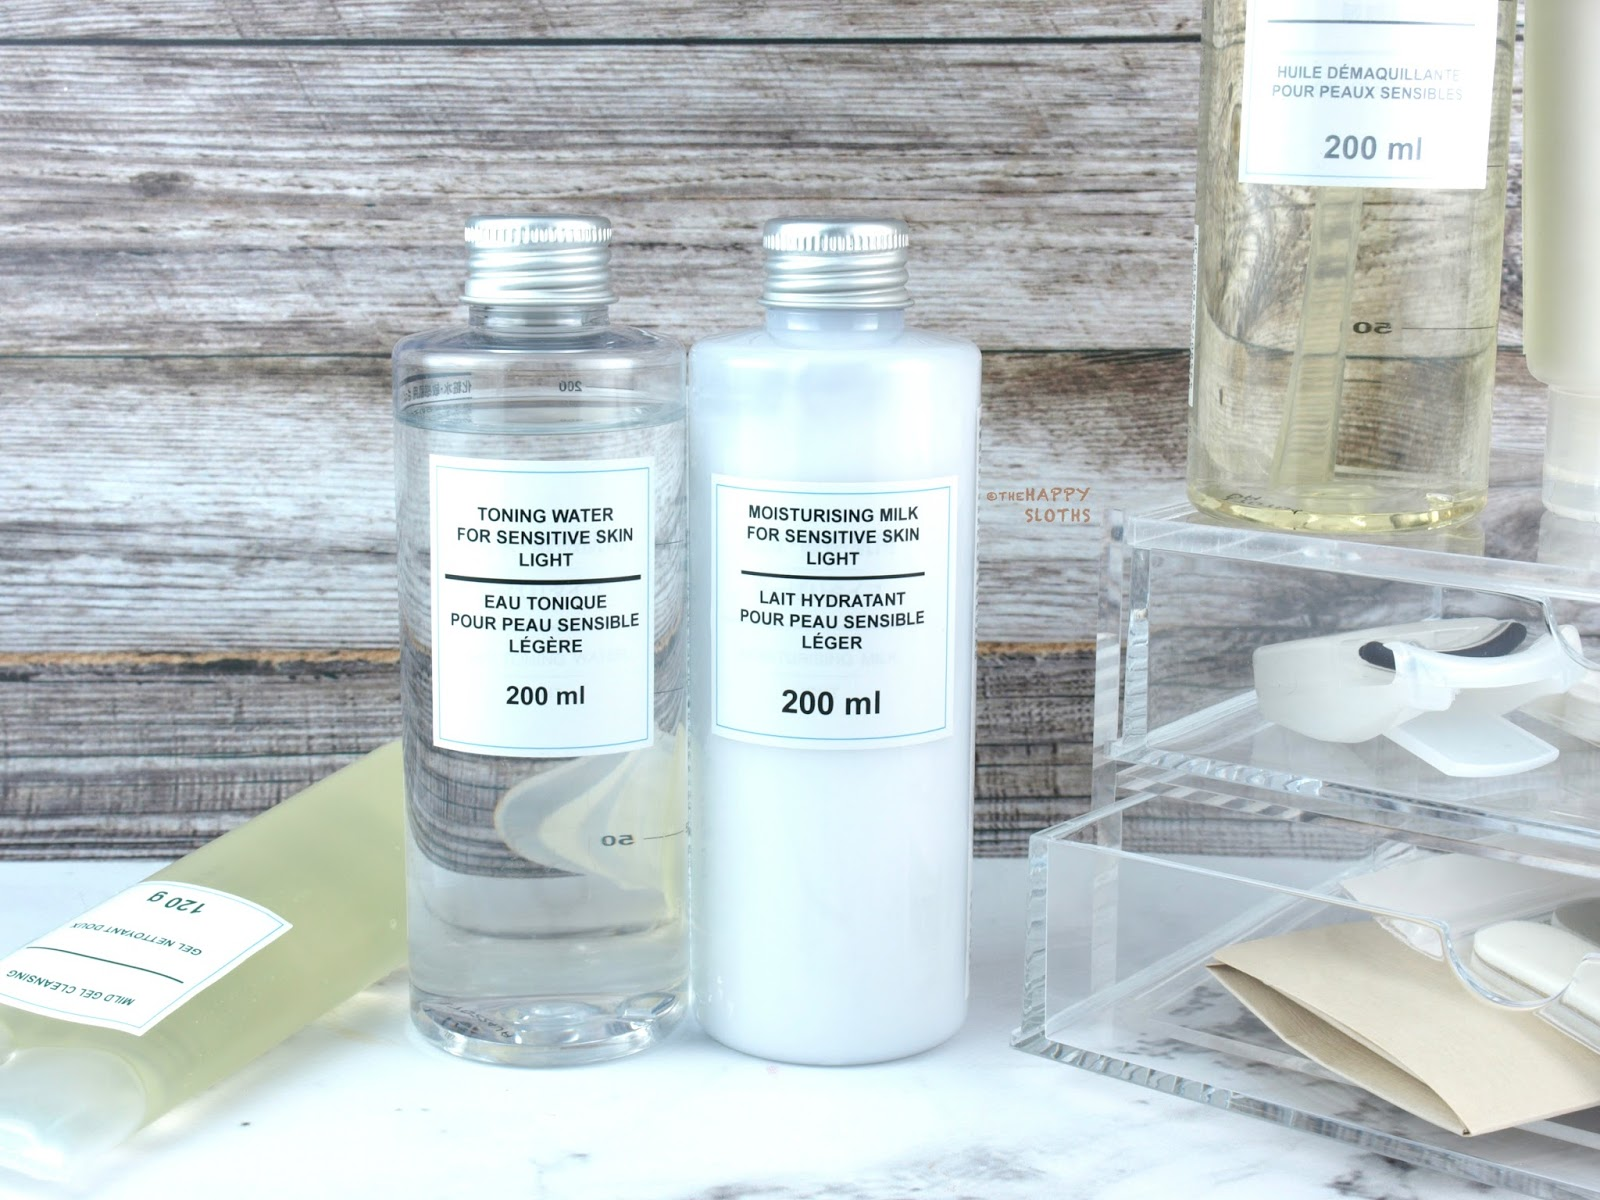 MUJI Skincare | Sensitive Skin Light Toning Water & Sensitive Skin Light Moisturizing Milk: Review